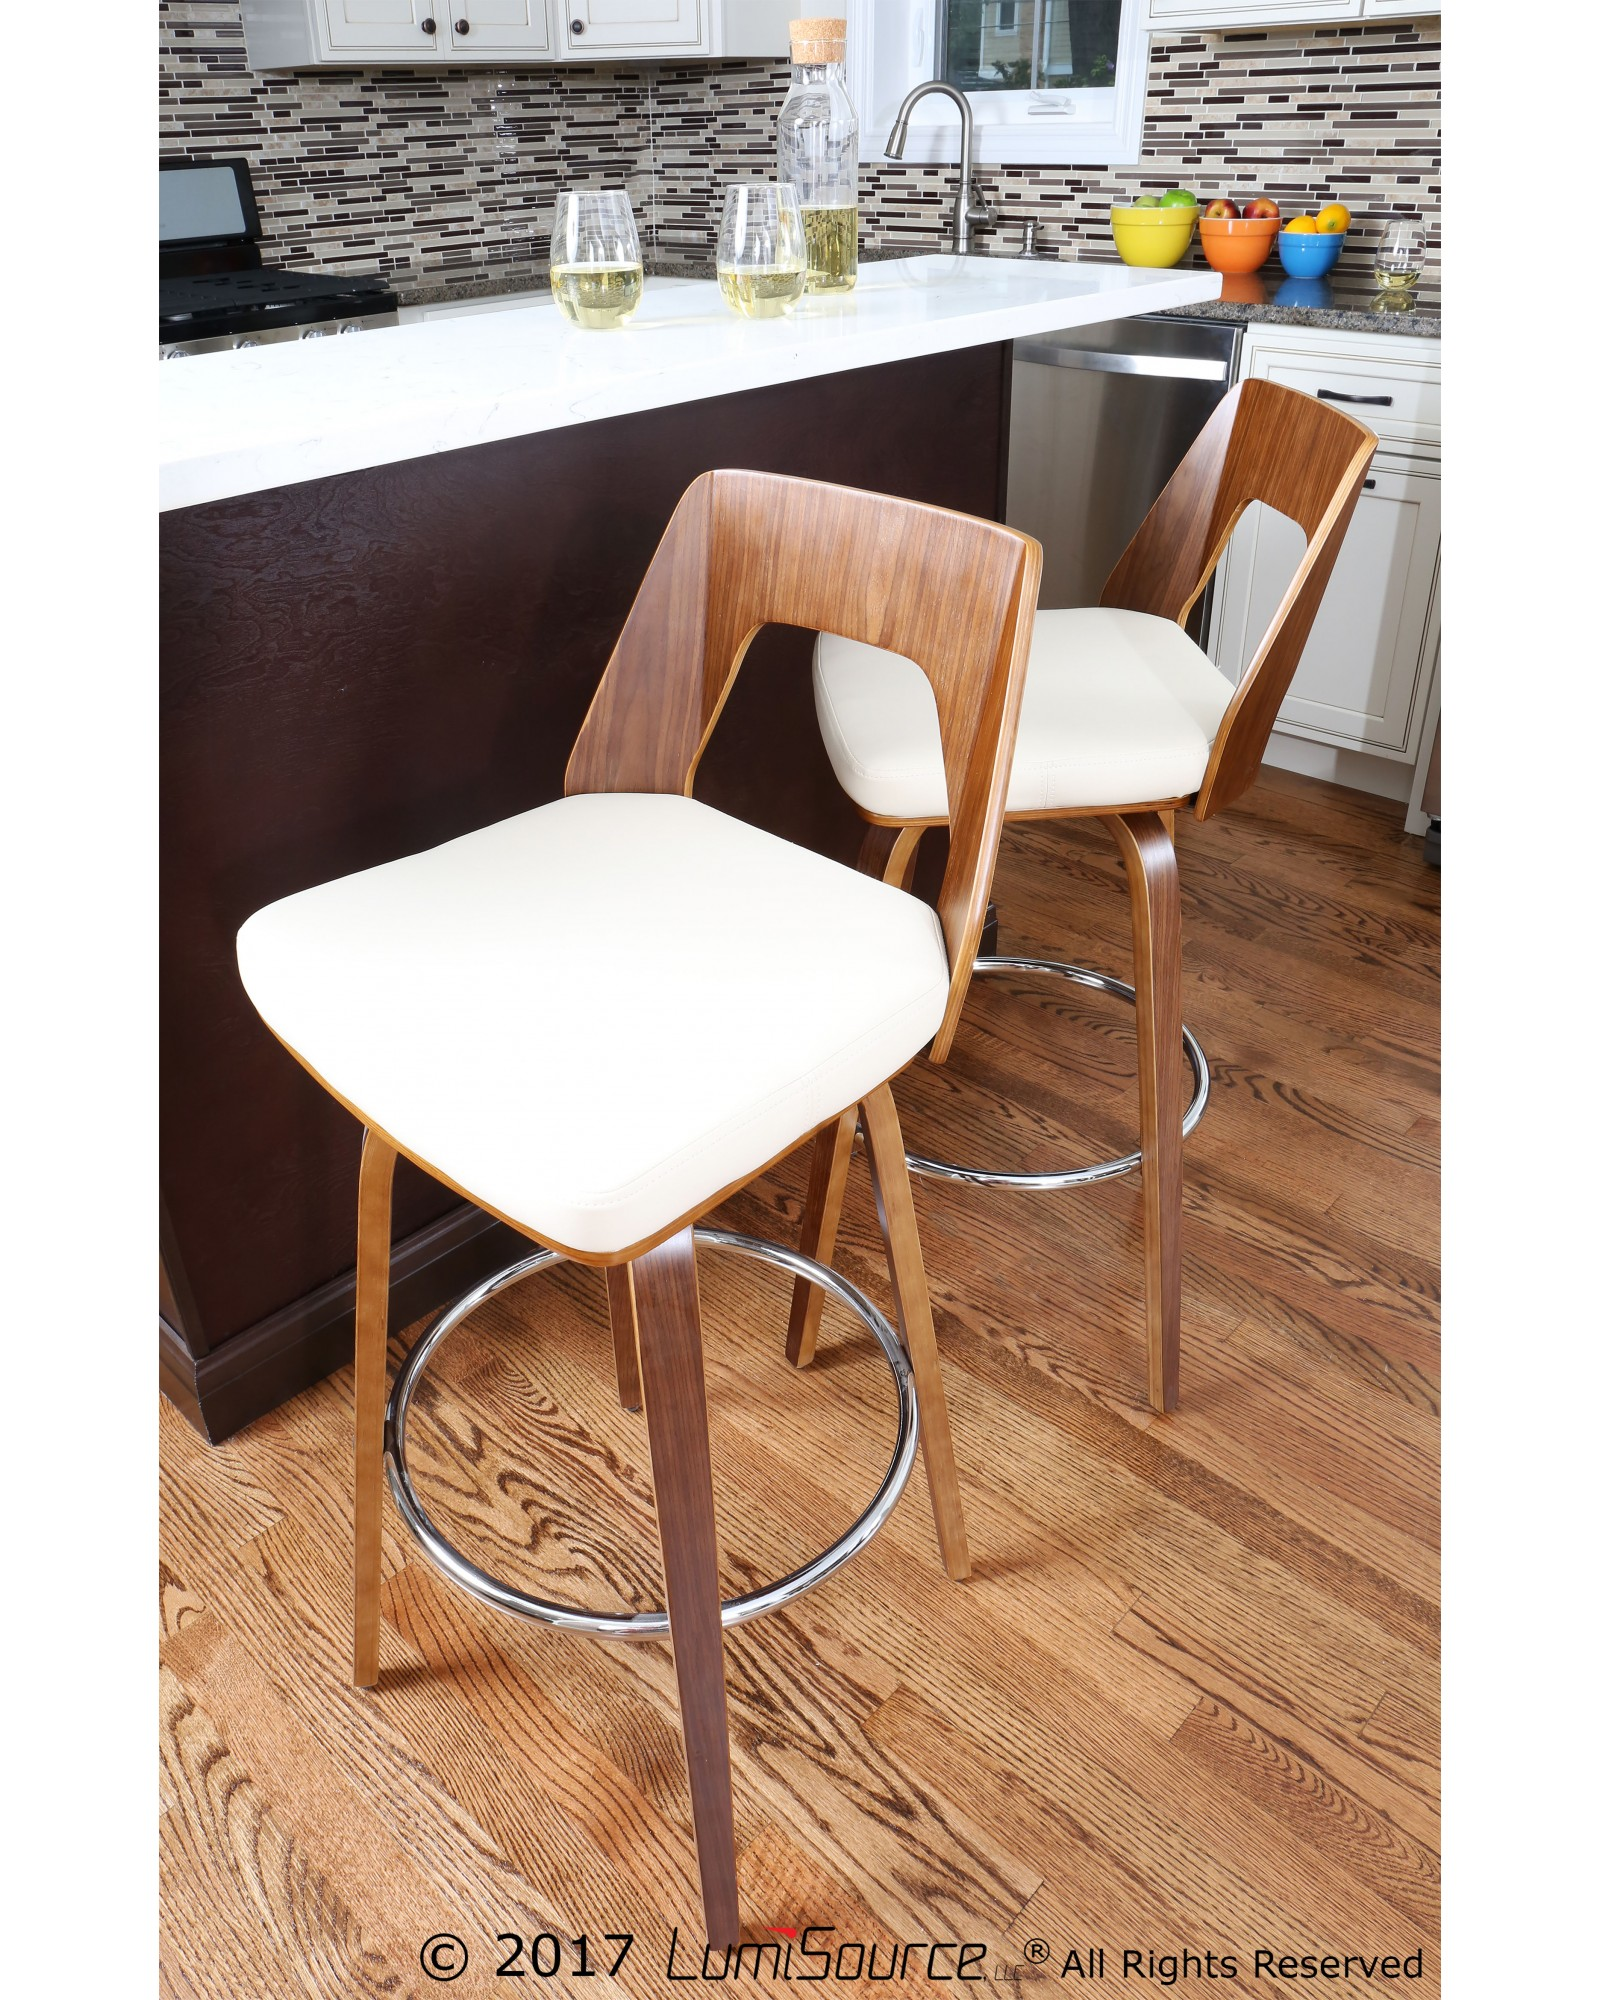 Trilogy Mid-Century Modern Counter Stool in Walnut and Cream Faux Leather